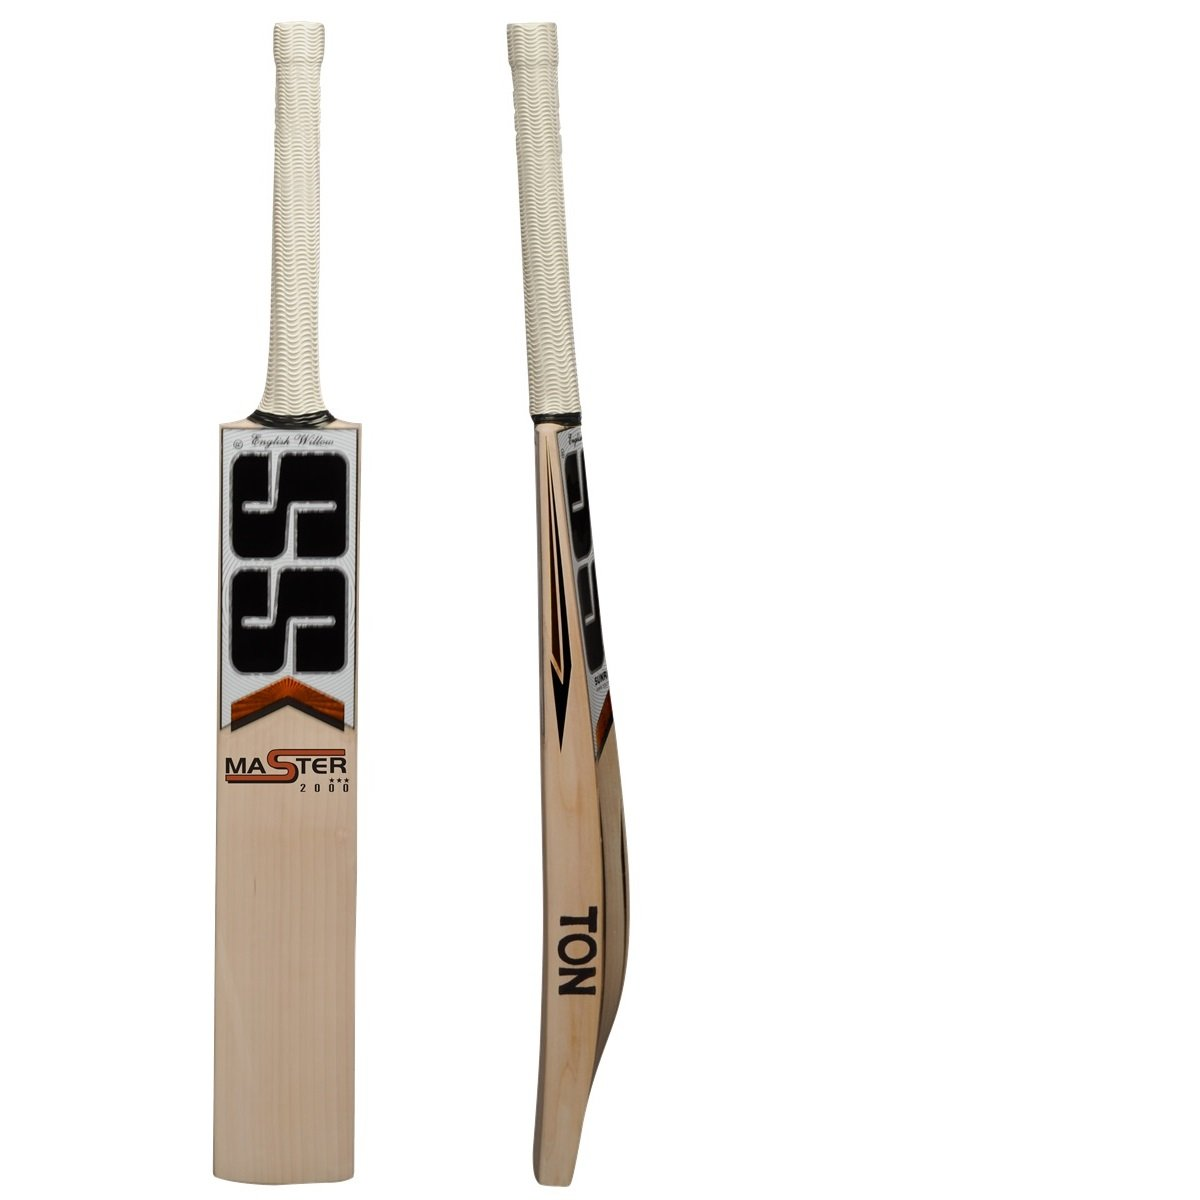 SS Master 2000 English Willow Cricket Bat (Free Extra SS Grip, Bat cover, Anti scuff Sheet)- 2017 Edition